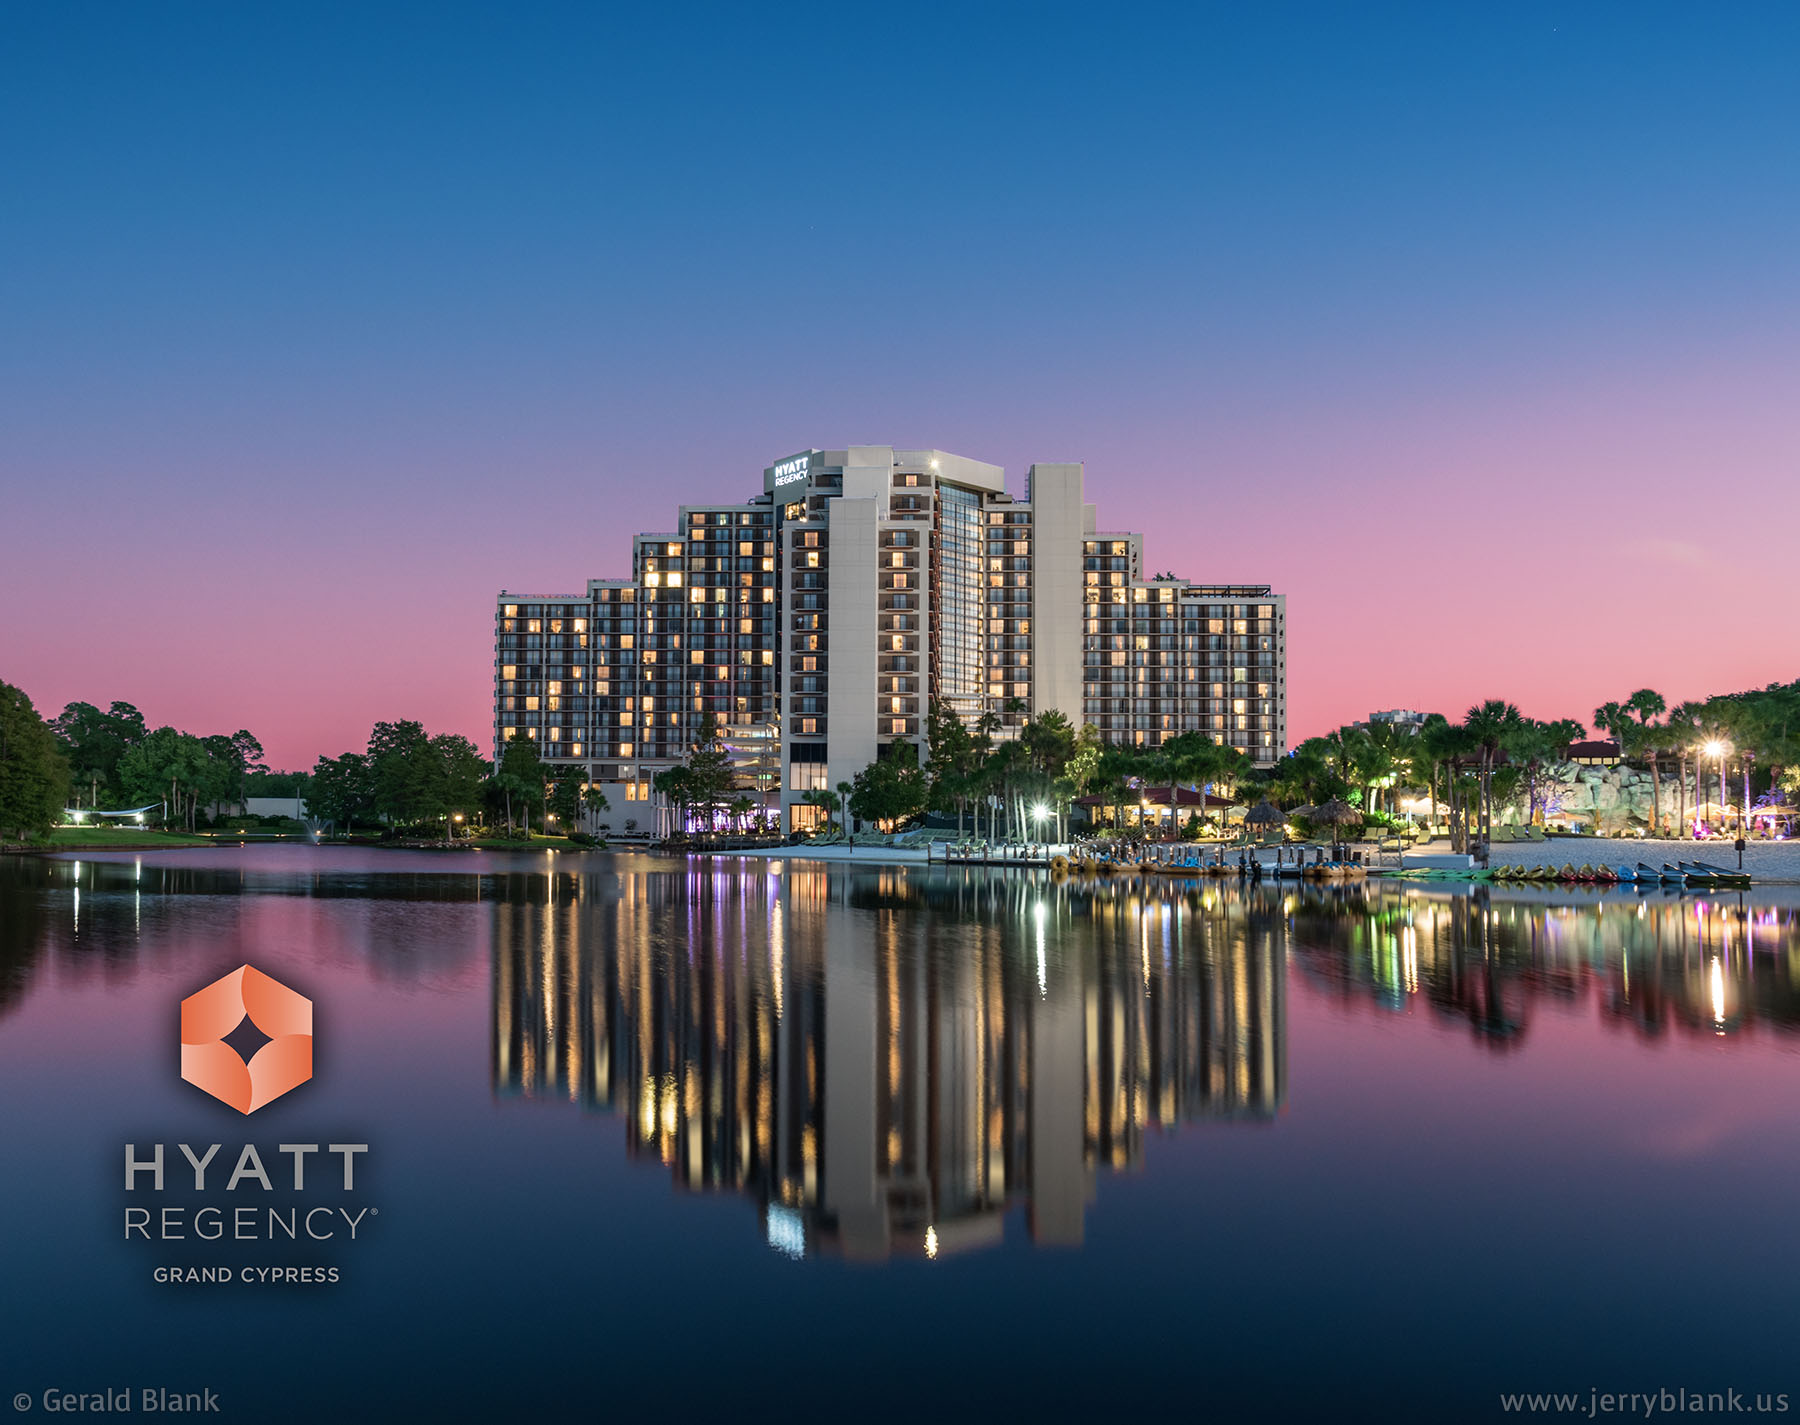 #JB102703 - The Hyatt Regency Grand Cypress Resort, located just north of Disney World in central Florida - photo by Jerry Blank